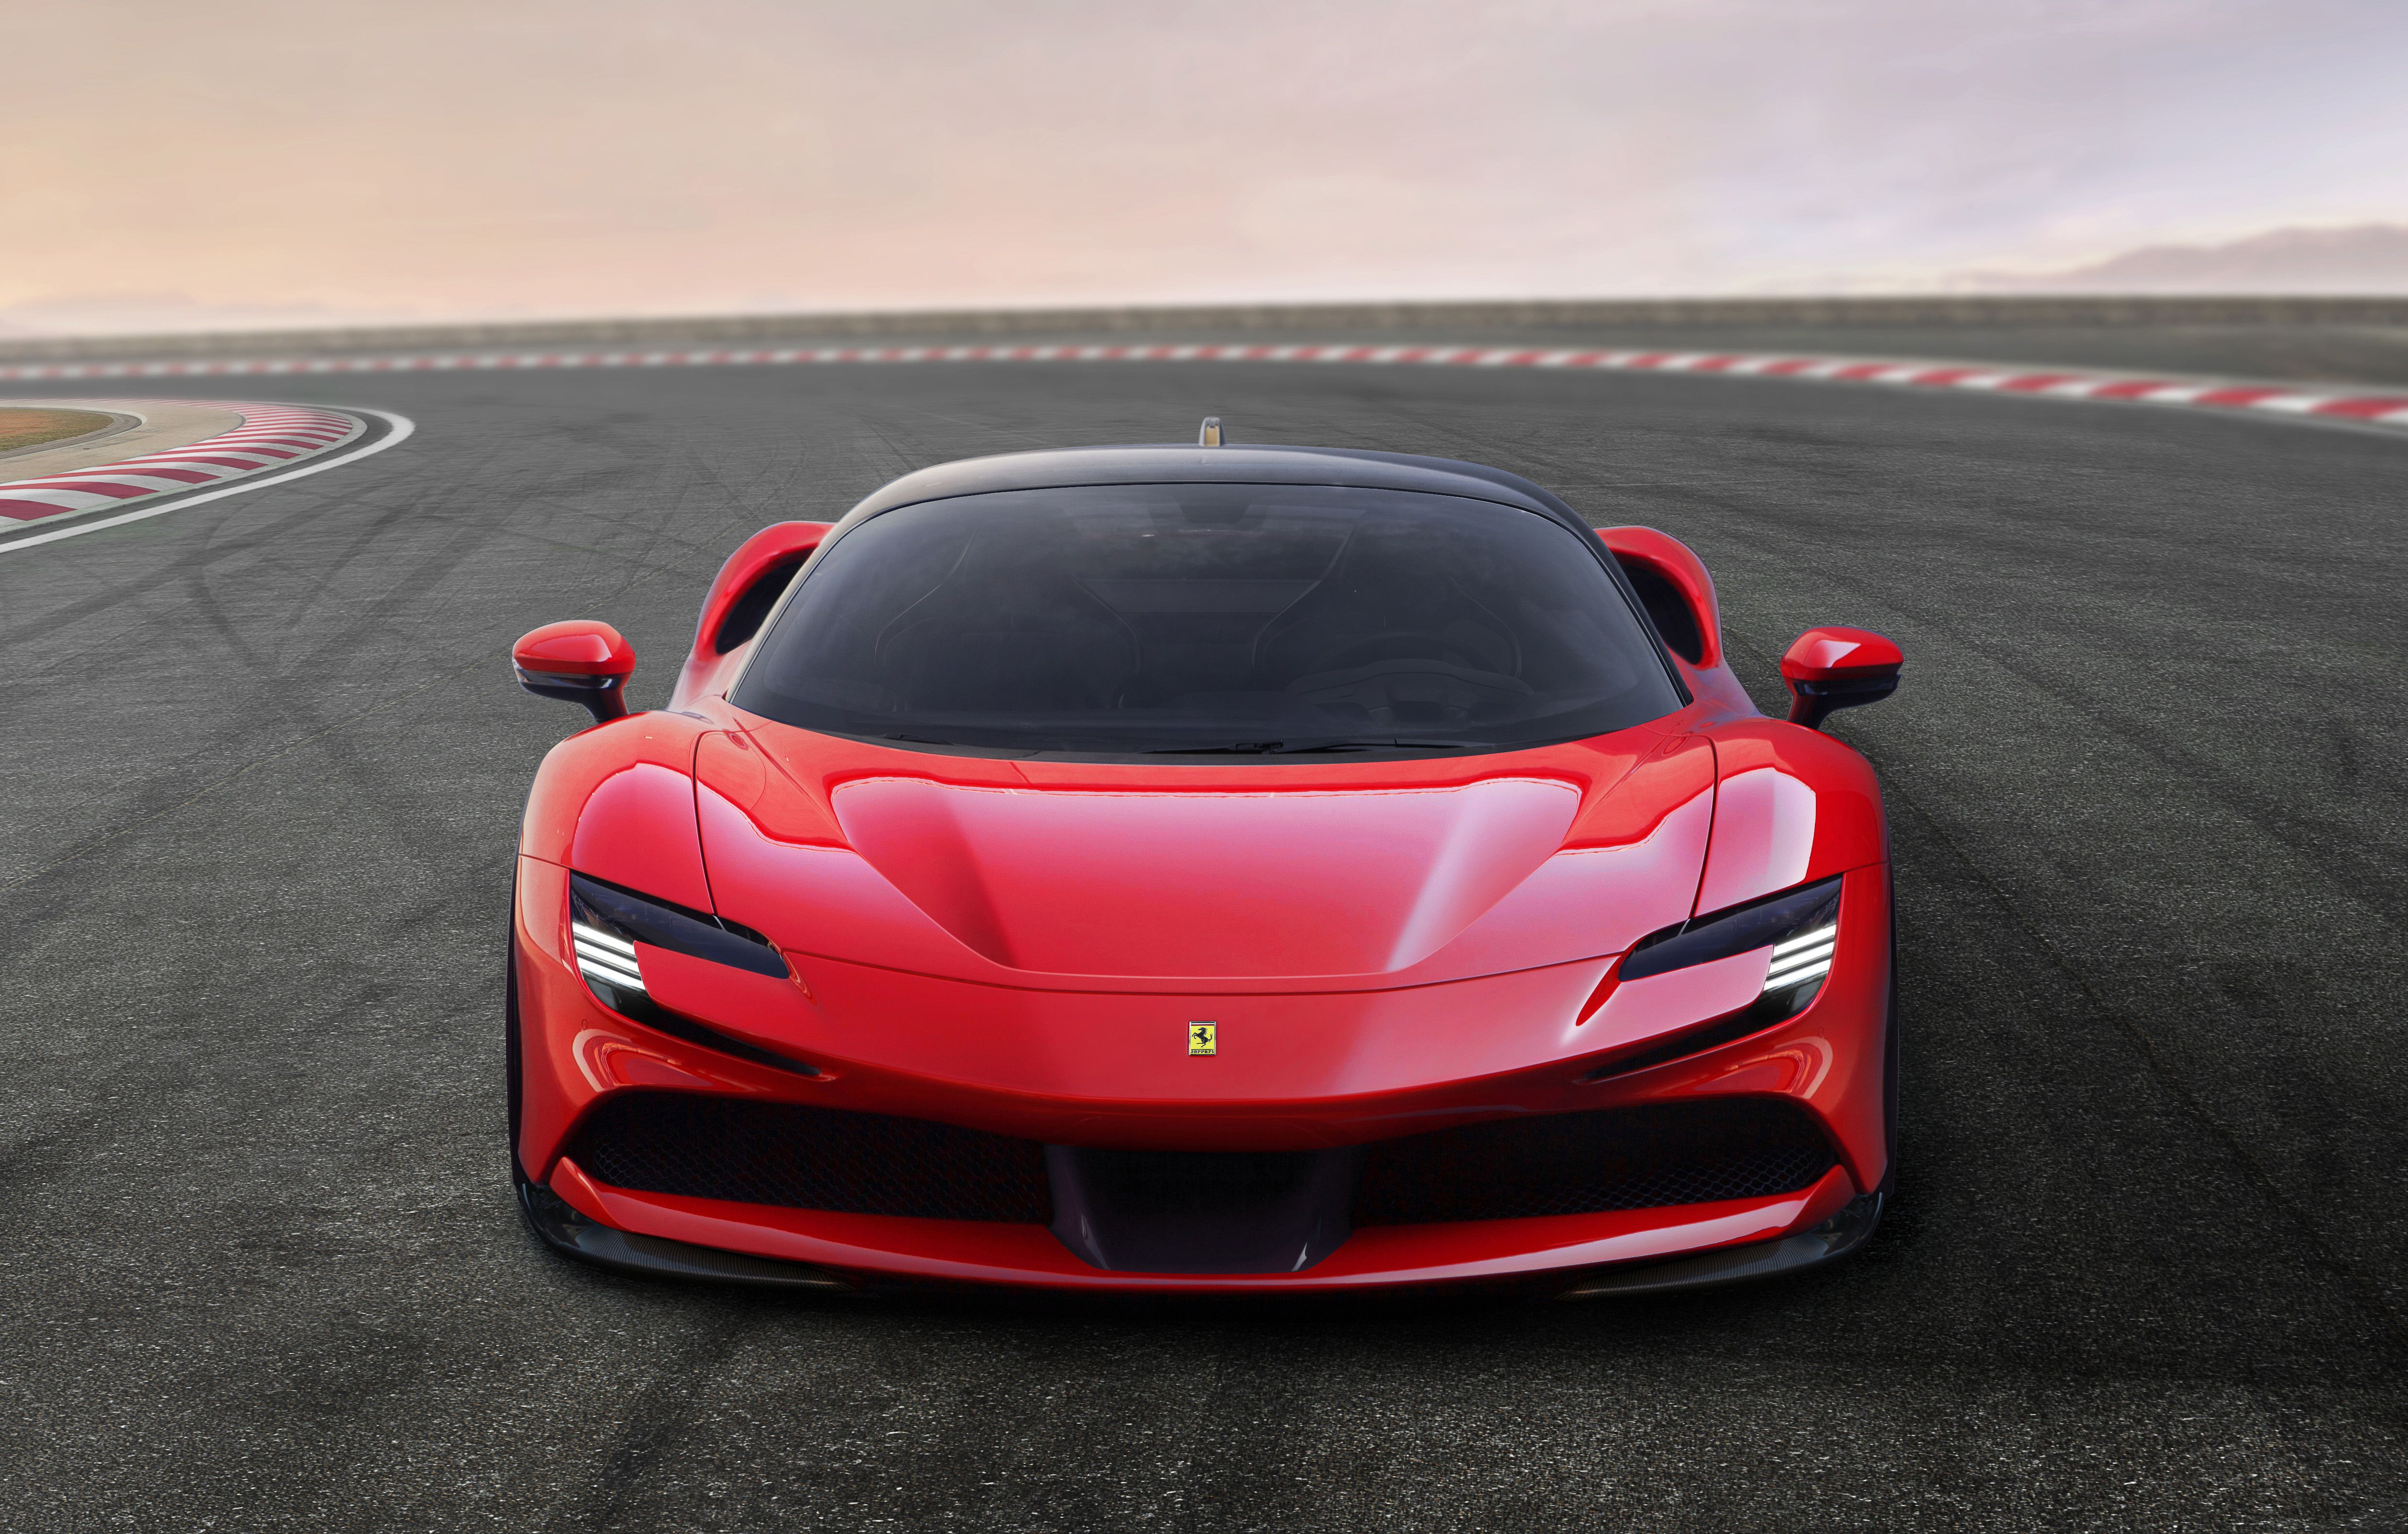 The Ferrari Sf90 Stradale Marks Progress And Breaks A Lot Of In House Records Top Speed New Ferrari Sports Car Ferrari